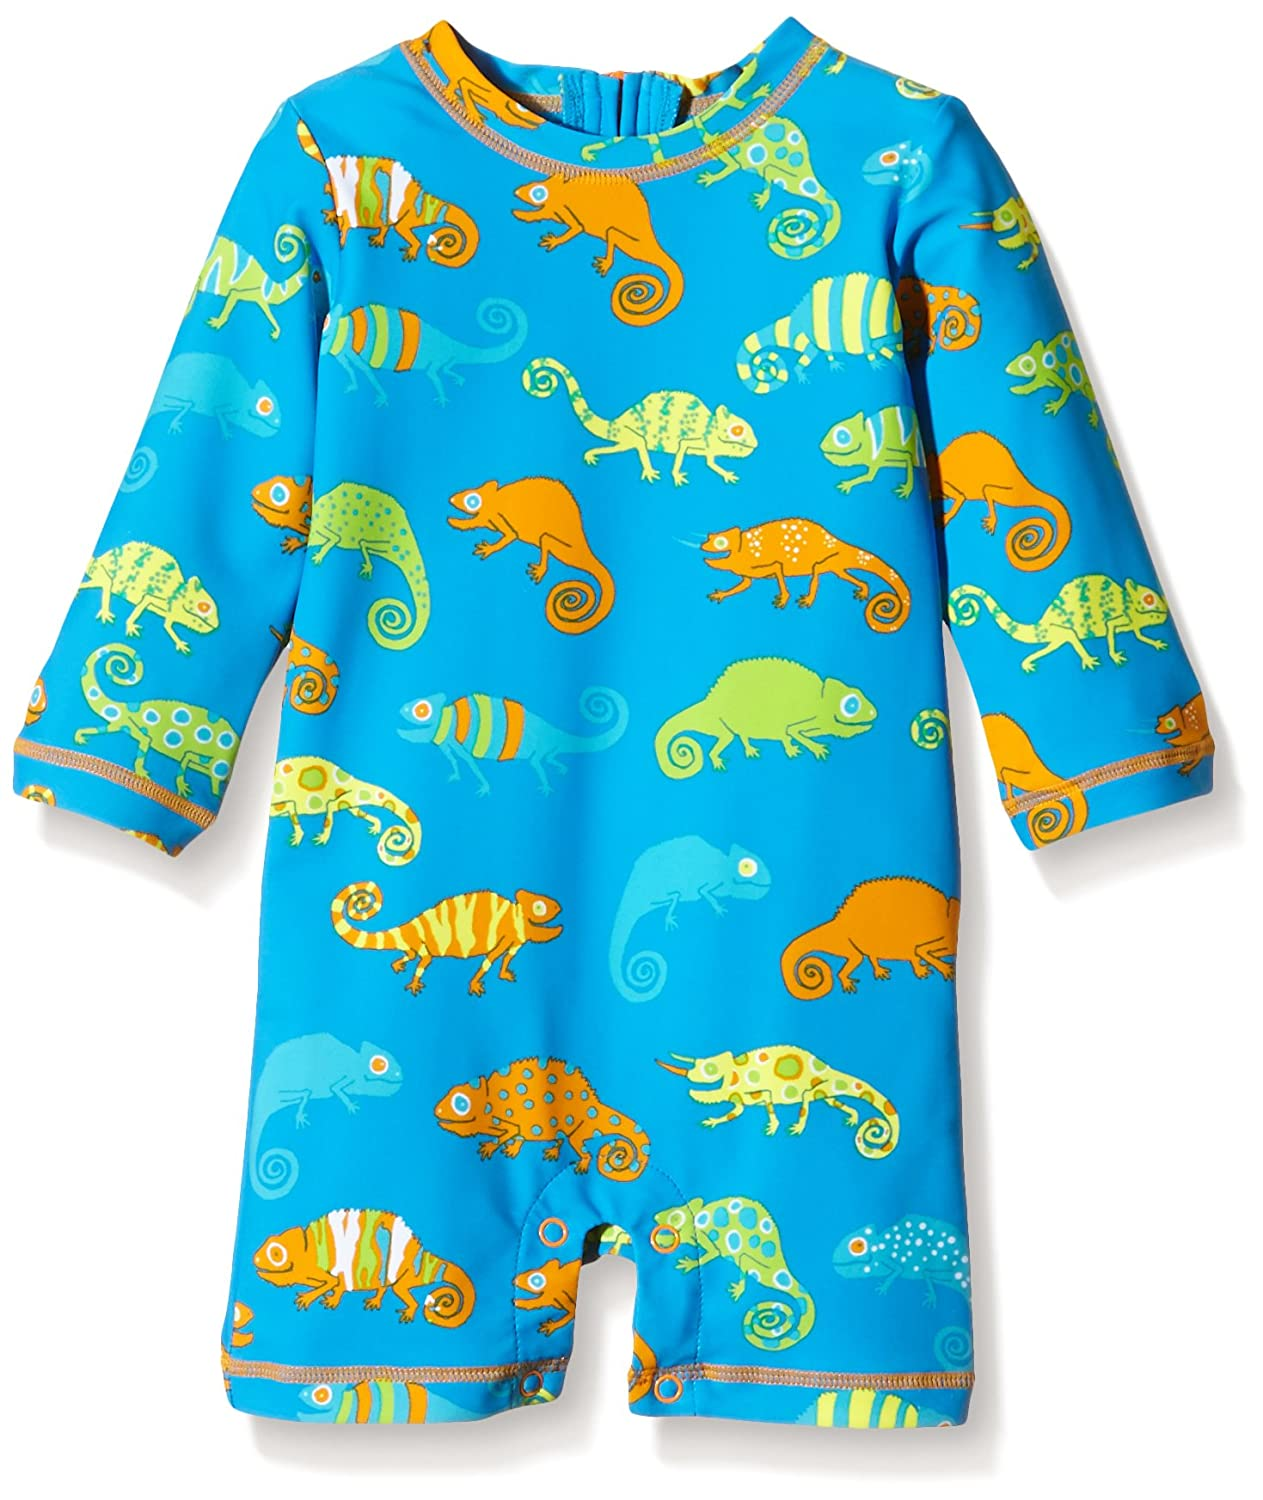 Hatley Baby Boys' Crazy Chameleons Rash Guard Blue 6-12 Months Hatley Children's Apparel BS6LEON001